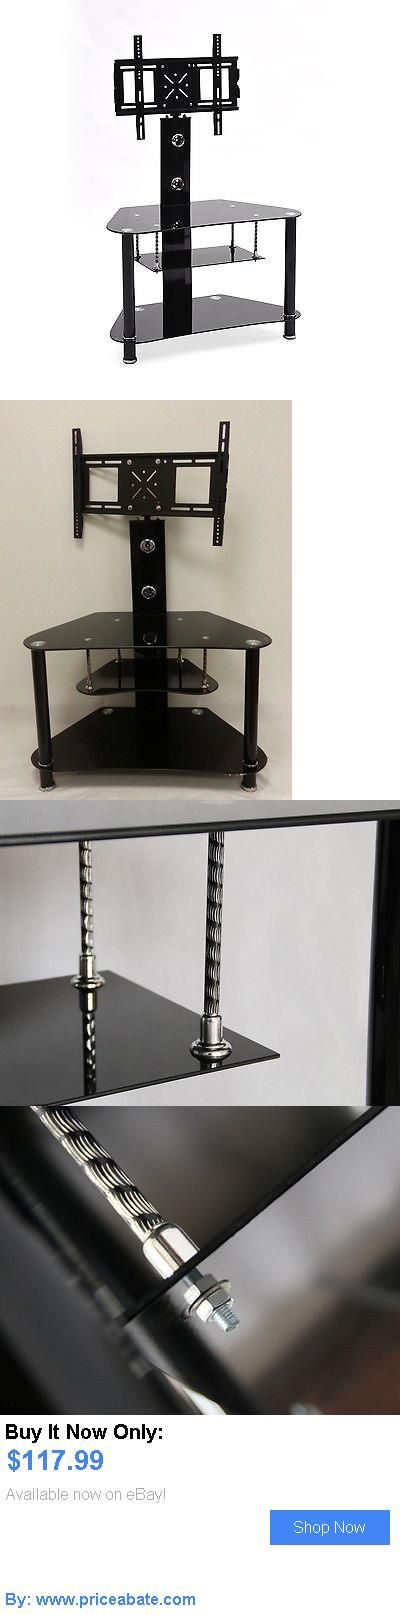 Entertainment Units, TV Stands: Hodedah Howard Glass Tv Stand With Mount BUY IT NOW ONLY: $117.99 #priceabateEntertainmentUnitsTVStands OR #priceabate